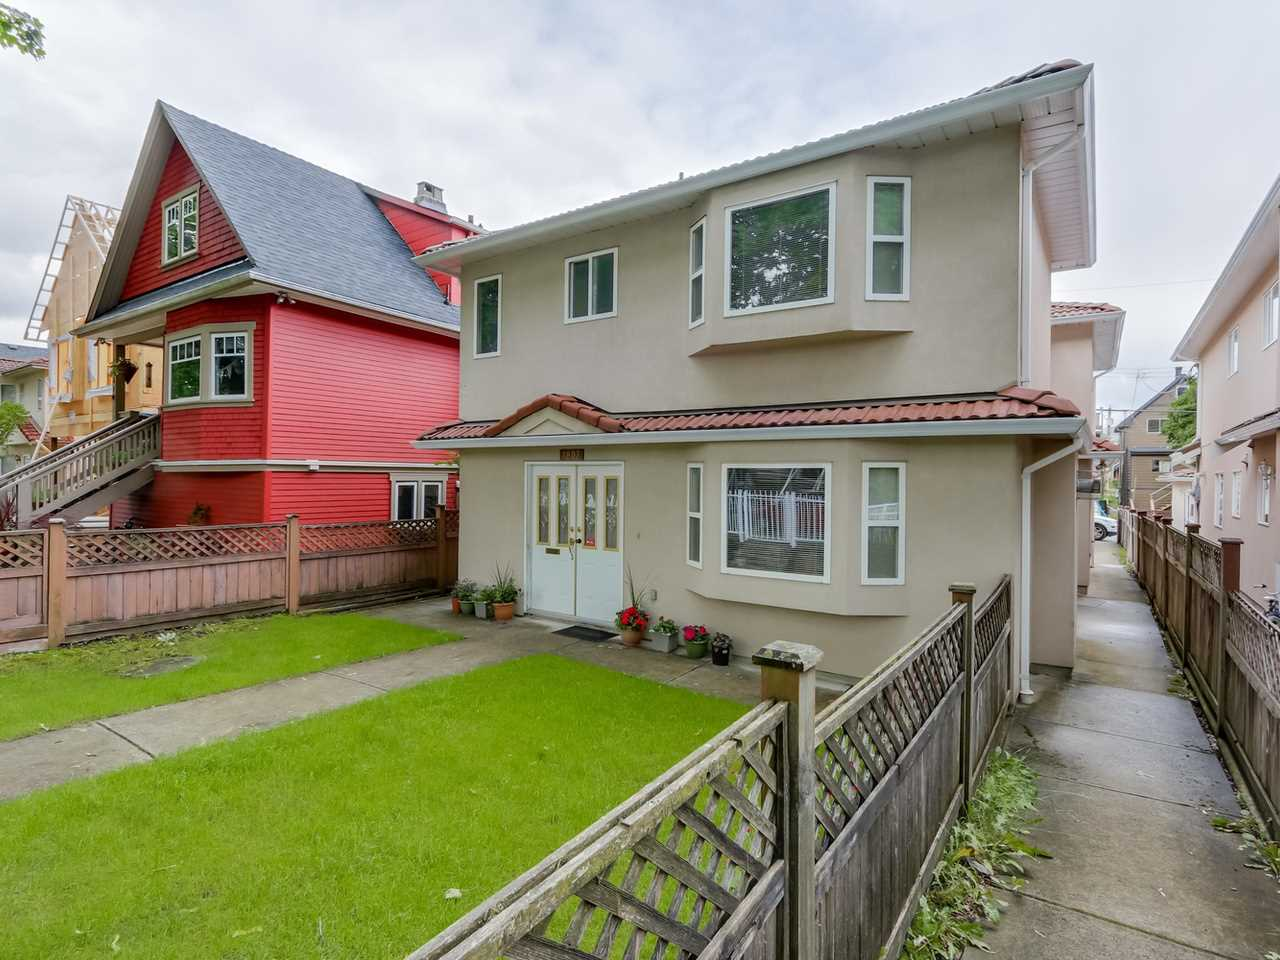 Main Photo: 1809 E 13TH AVENUE in Vancouver: Grandview VE House 1/2 Duplex for sale (Vancouver East)  : MLS® # R2081269